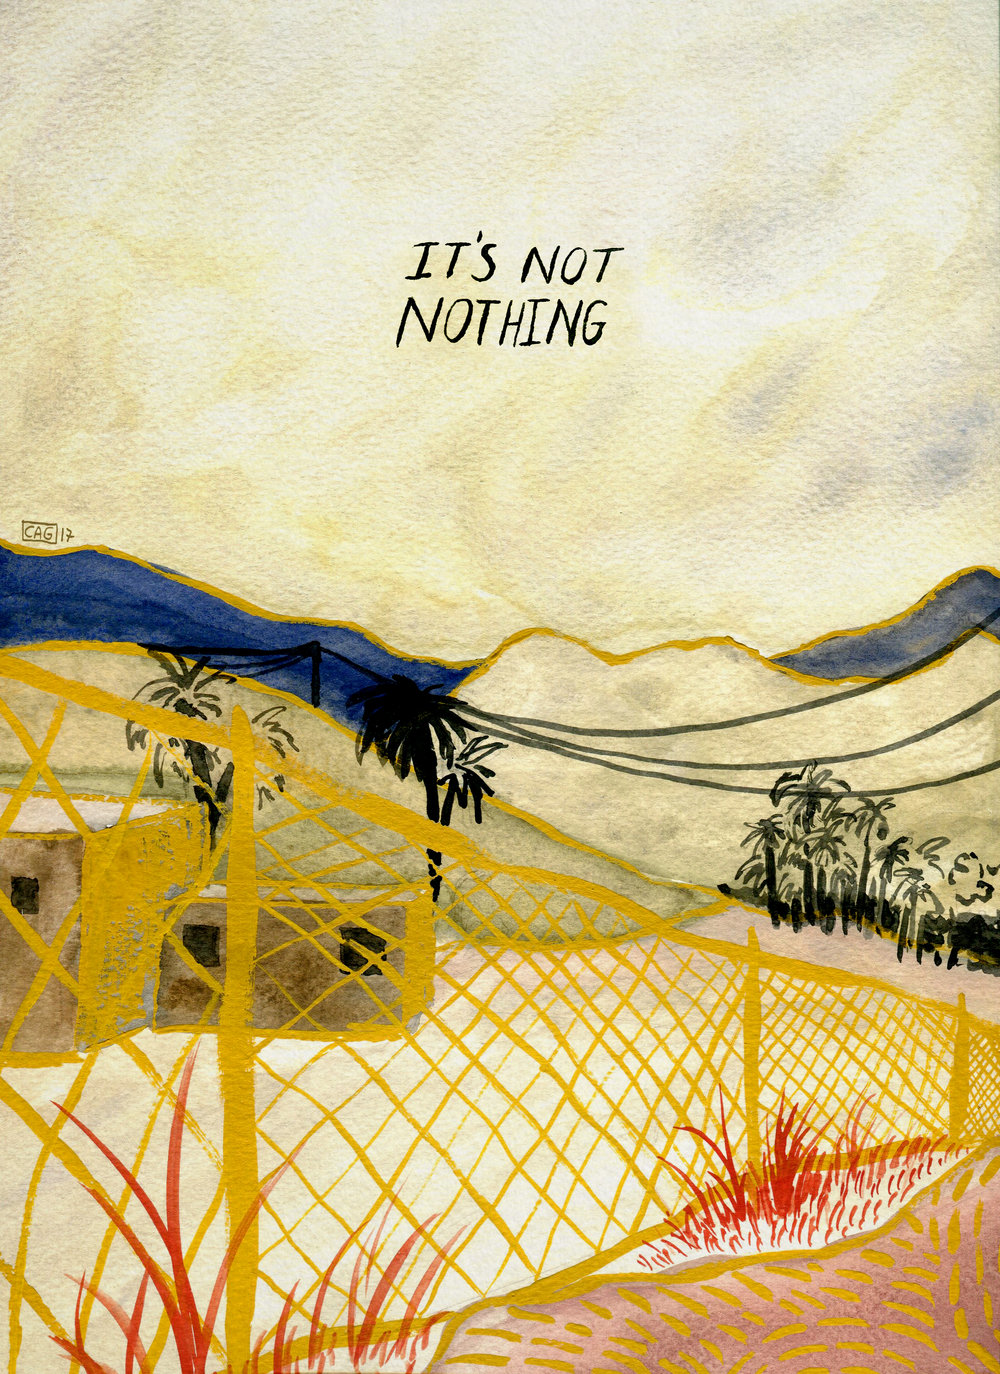 it's not nothing edit 2.jpg